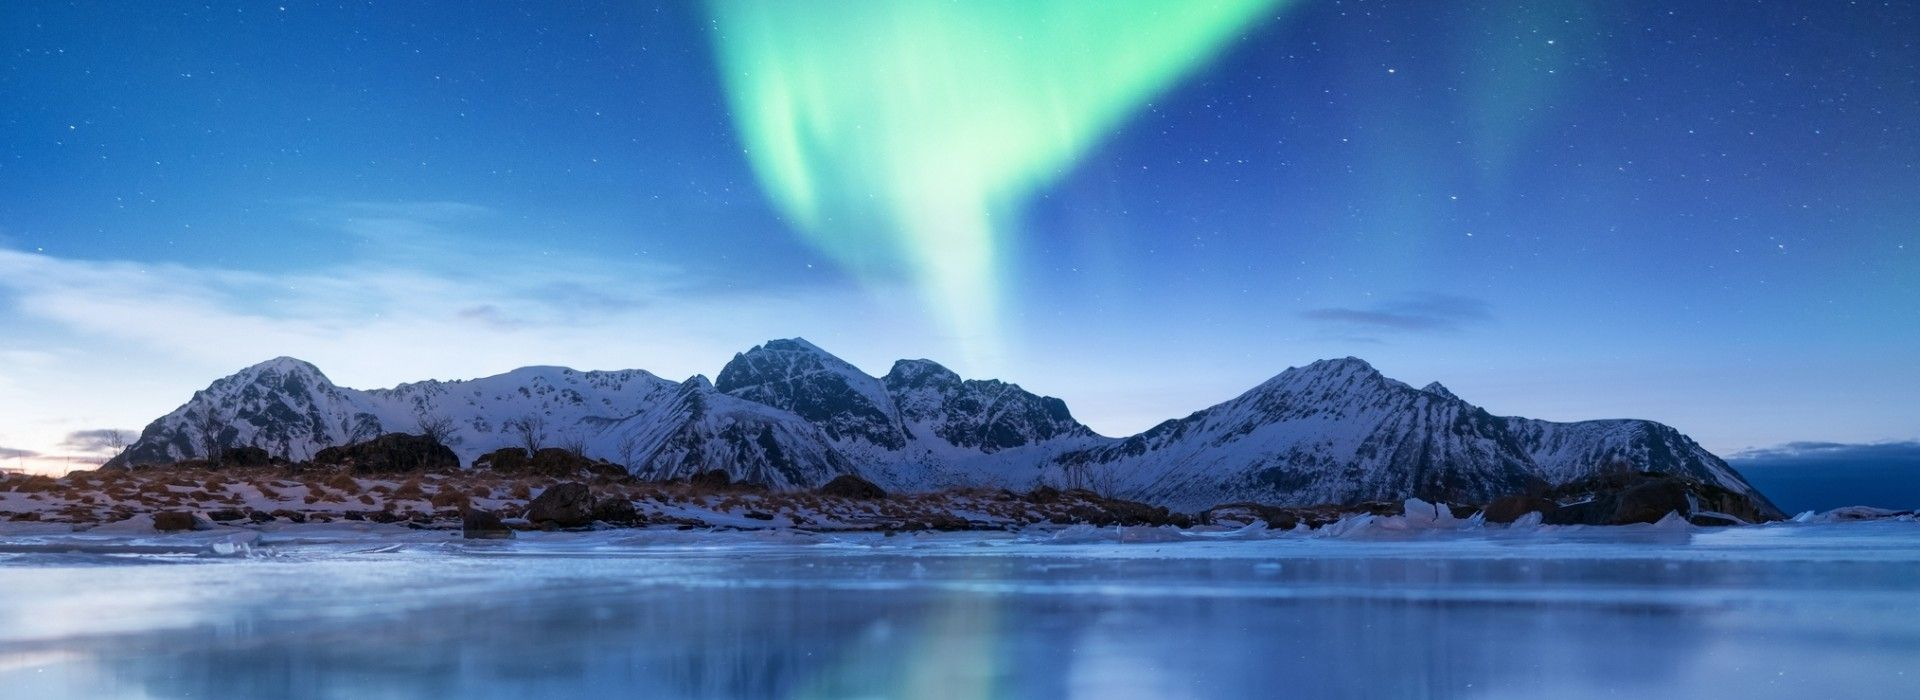 Sightseeing, attractions, culture and history Tours in Scandinavia